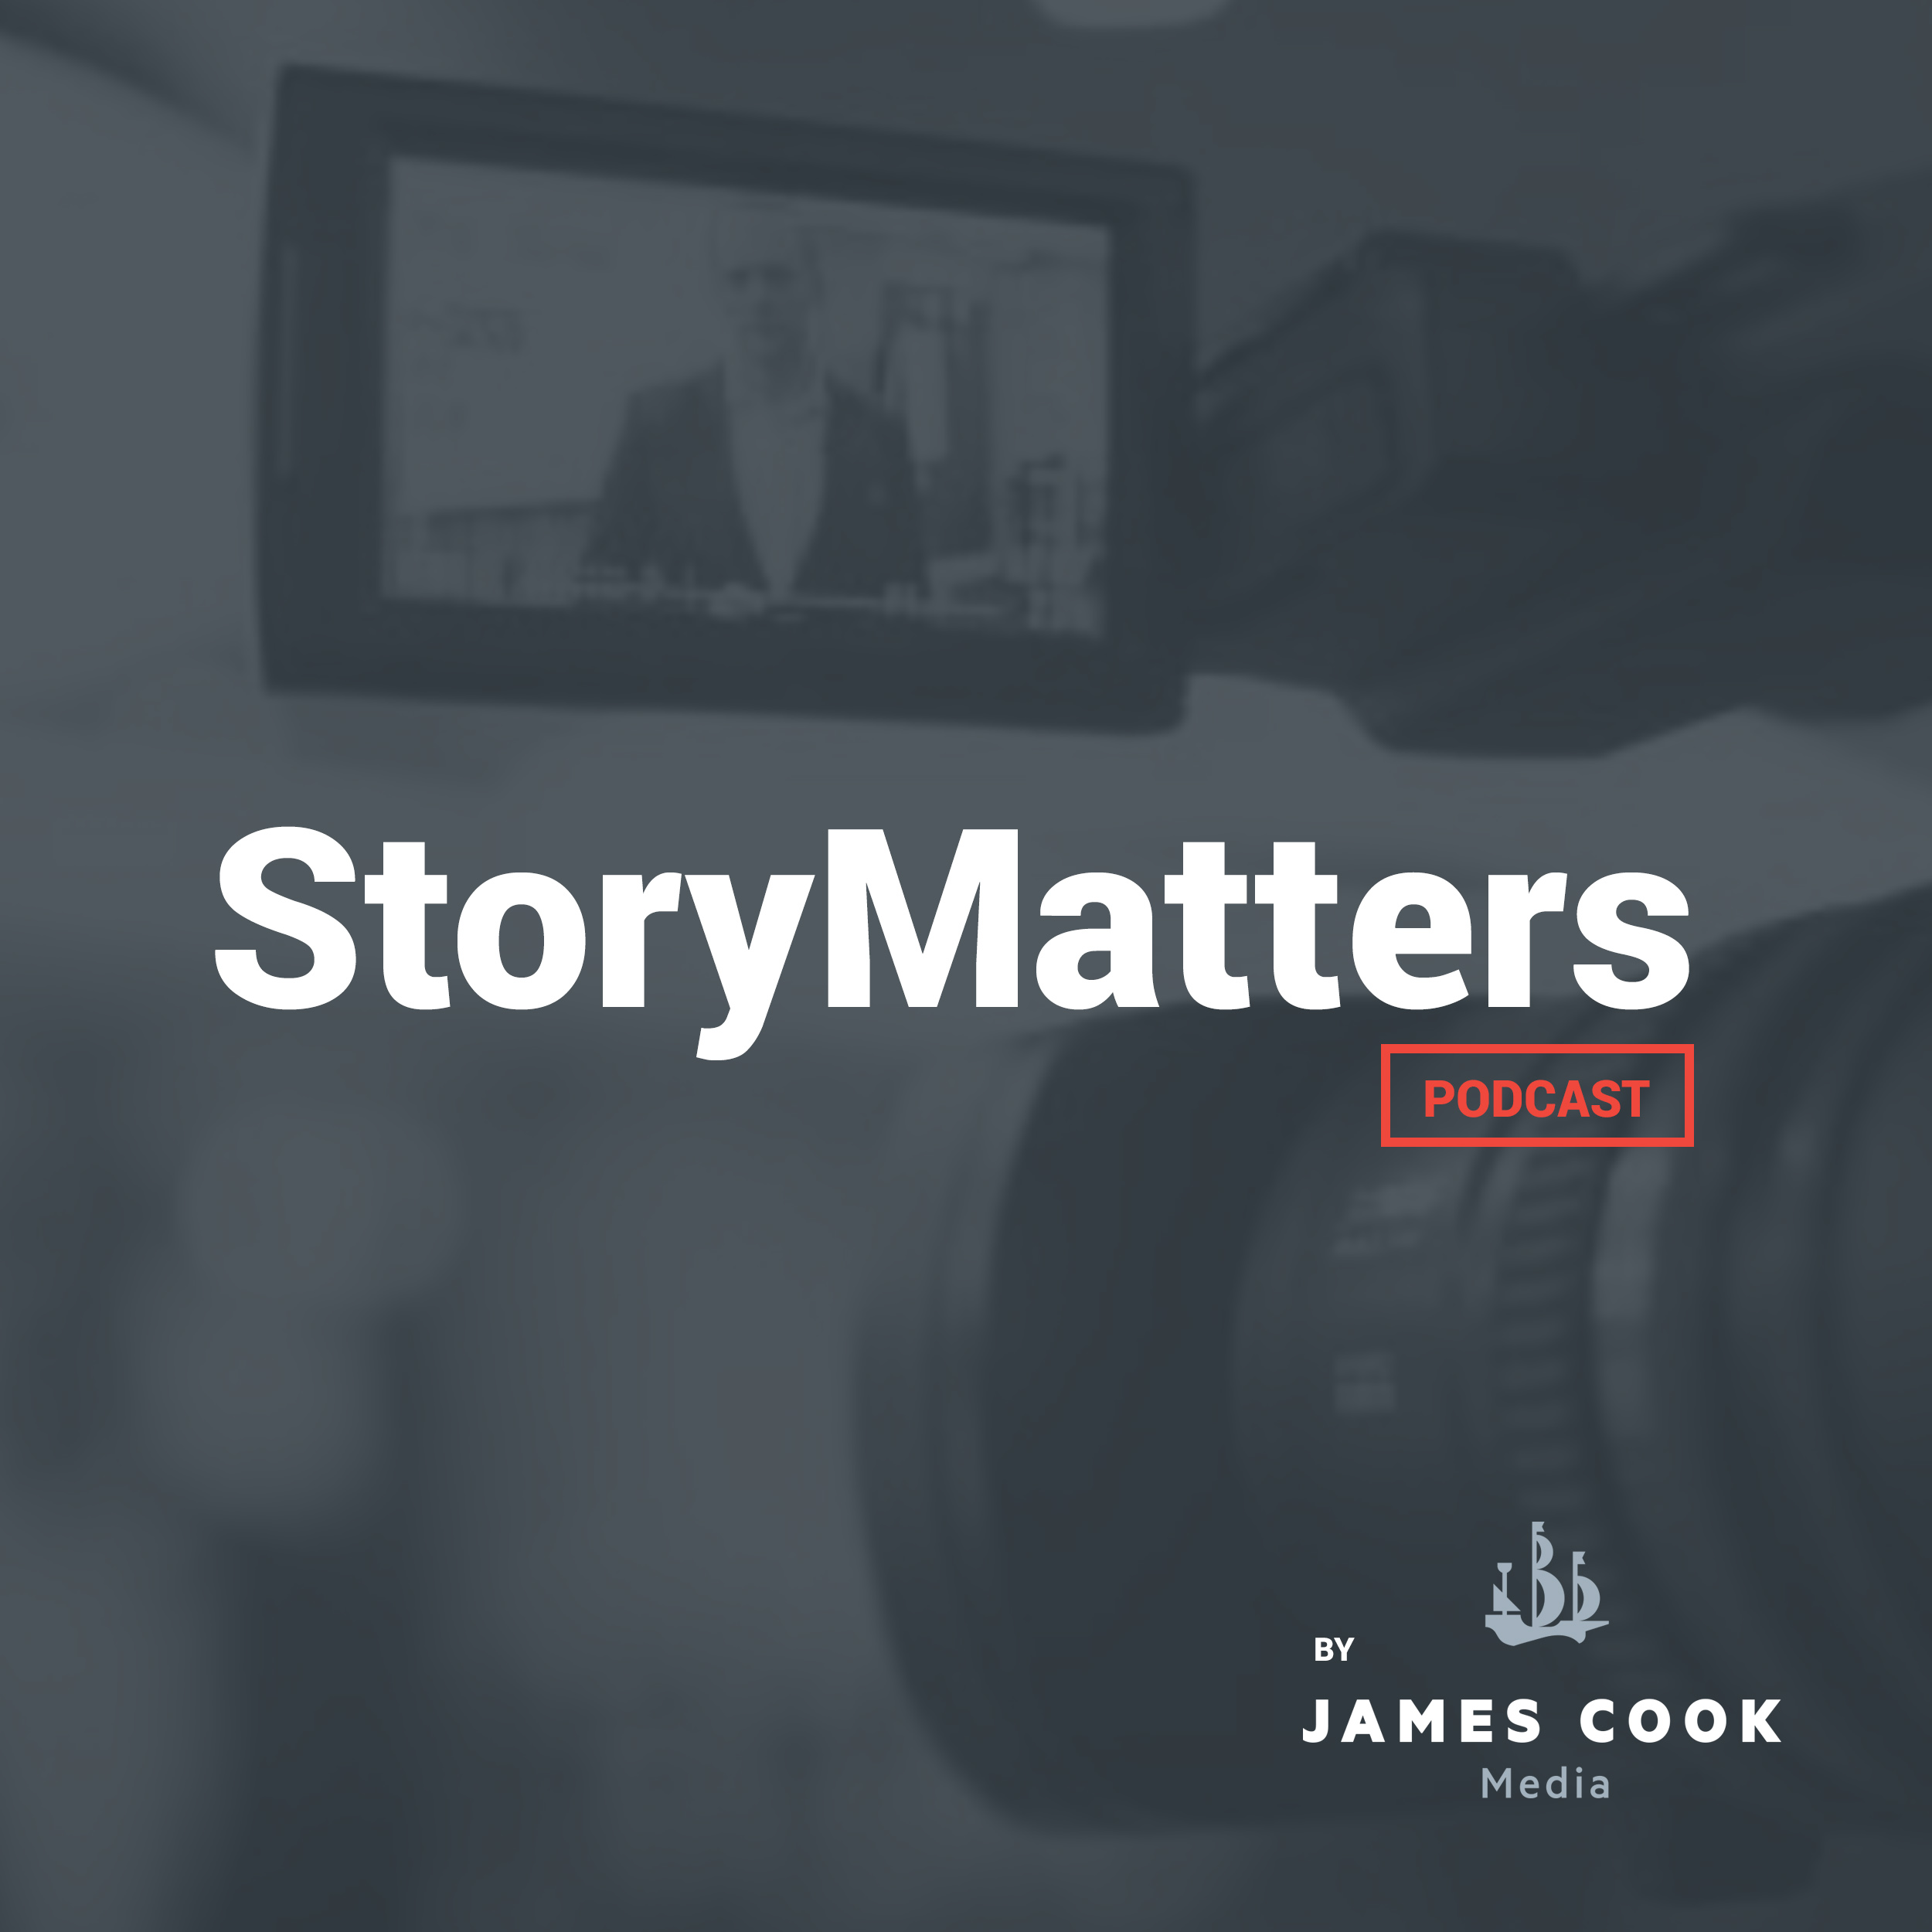 StoryMatters Podcast by James Cook Media show art